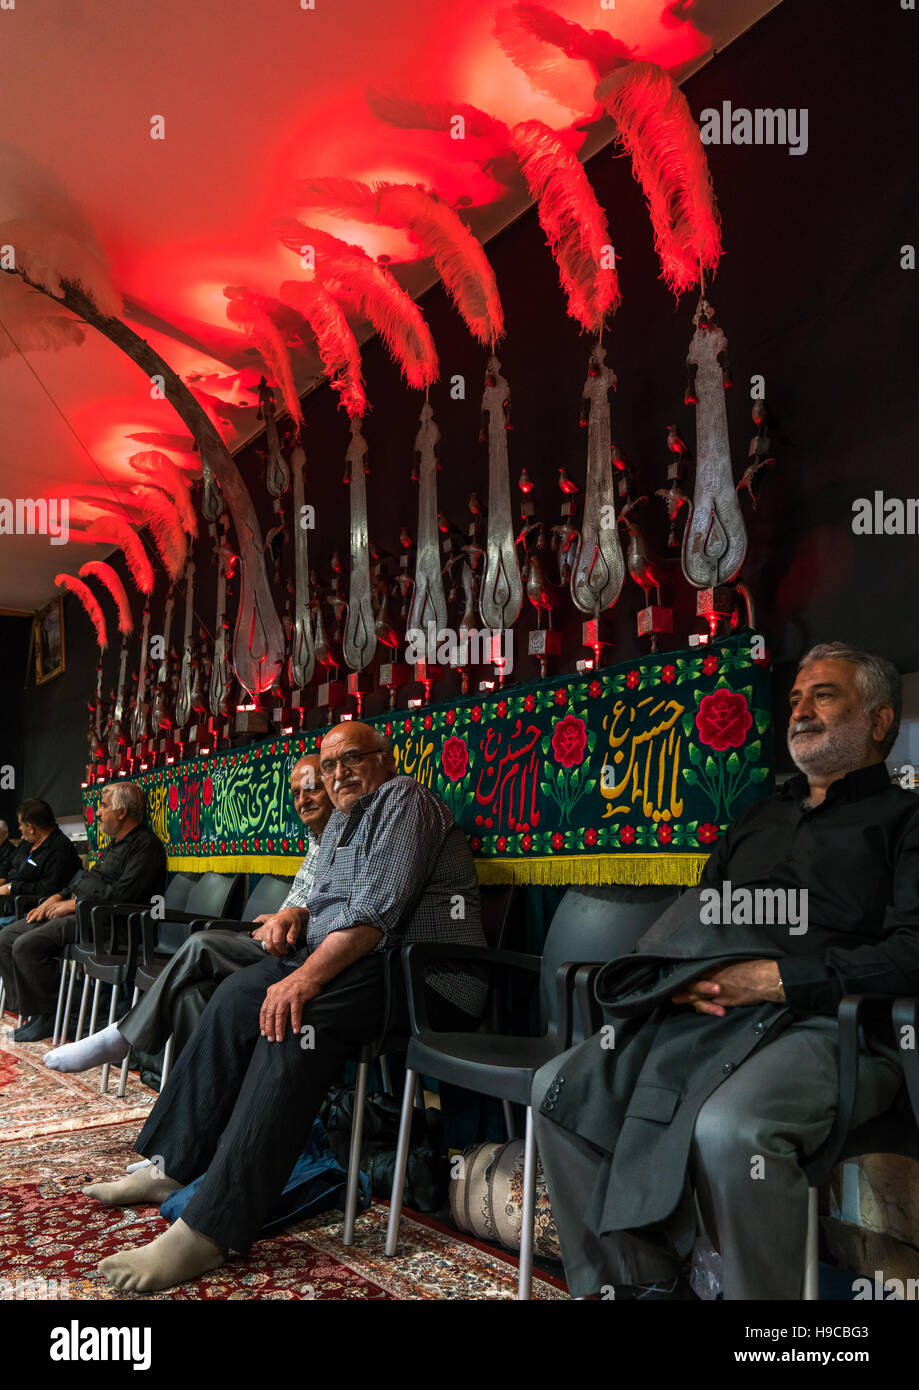 Shiite men standing under an alam in a hosseinieh decorated for muharram, Isfahan province, Kashan, Iran - Stock Image